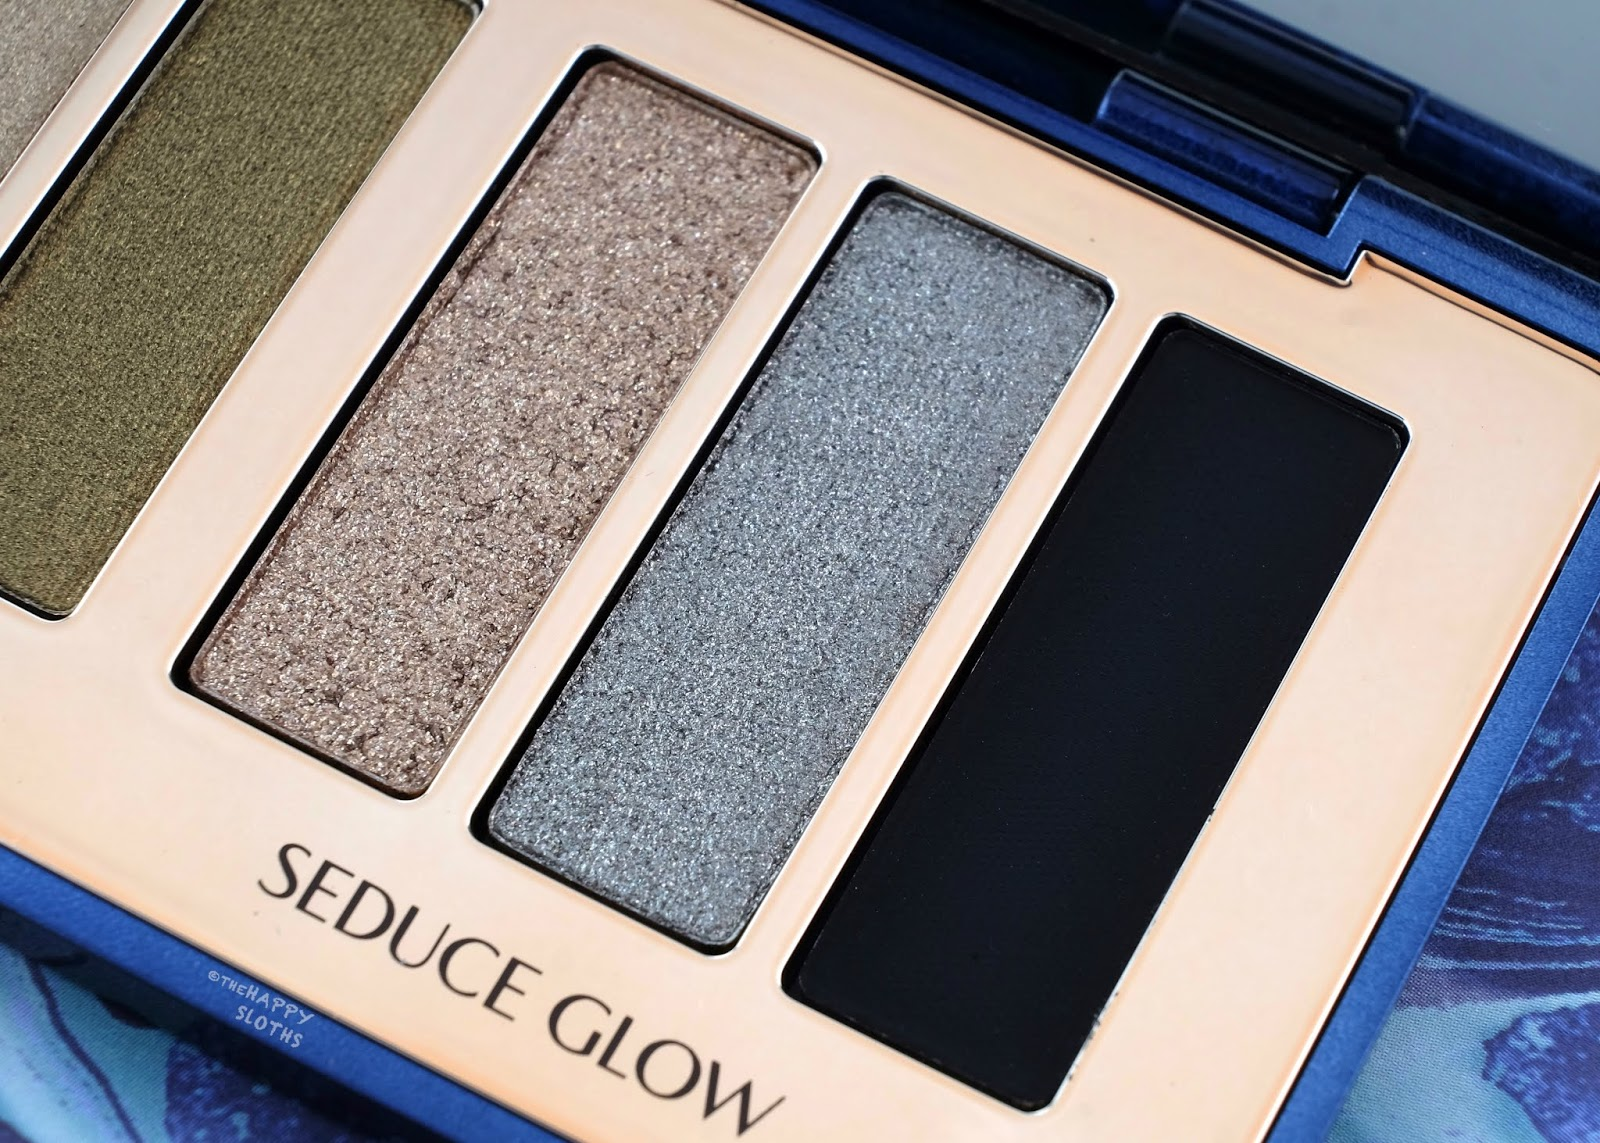 Charlotte Tilbury | Starry Eyes To Hypnotise Eyeshadow Palette | Seduce Glow: Review and Swatches